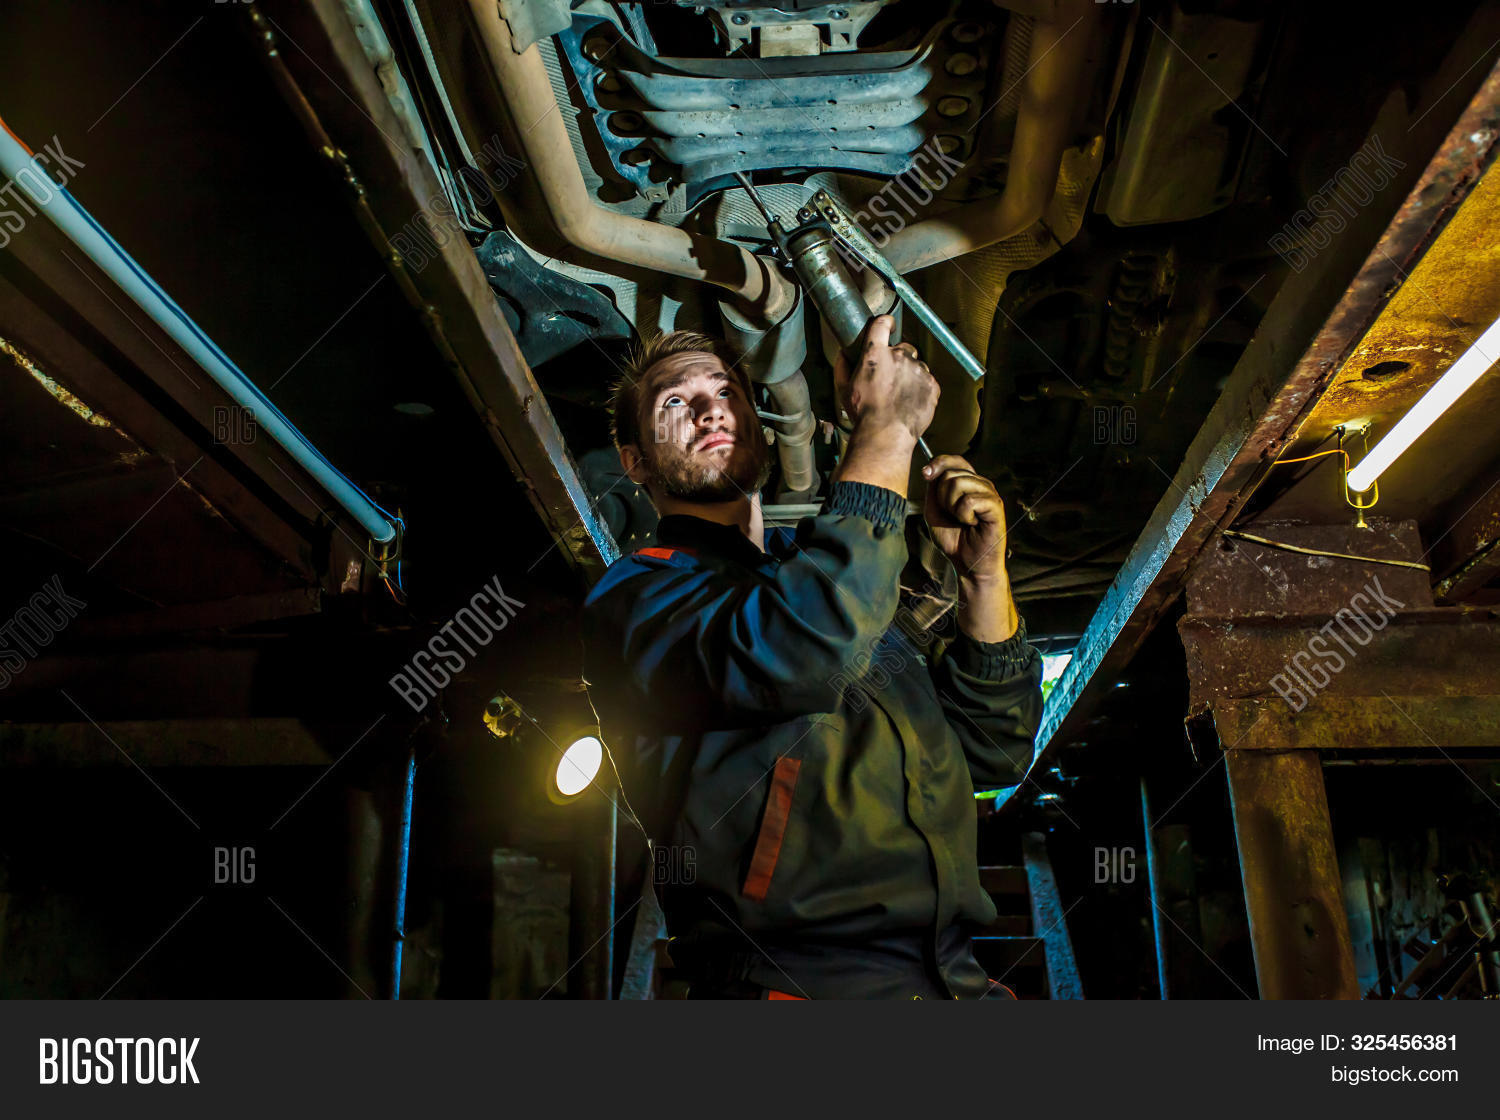 adult,auto,automobile,automotive,business,car,caucasian,engine,examining,expertise,fix,garage,indoors,industry,maintenance,male,man,manual,mechanic,mechanical,motor,occupation,oil,overalls,people,person,problem,repair,repairman,rust,service,shop,technician,tire,tool,under,vehicle,work,worker,working,young